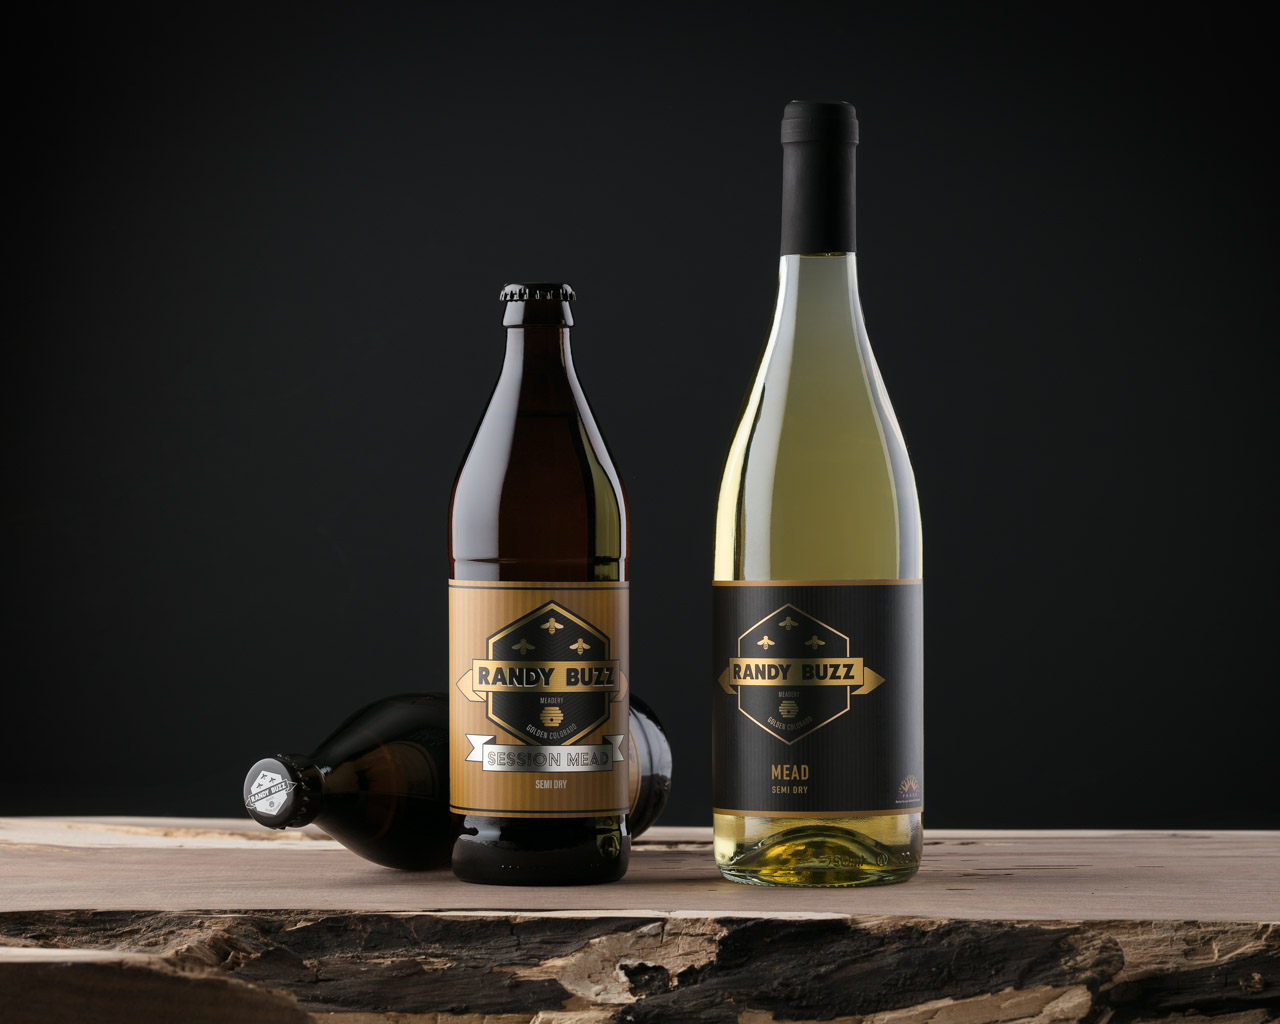 Product photo of Mead by Randy Buzz Meadery shot in studio in Littleton, CO